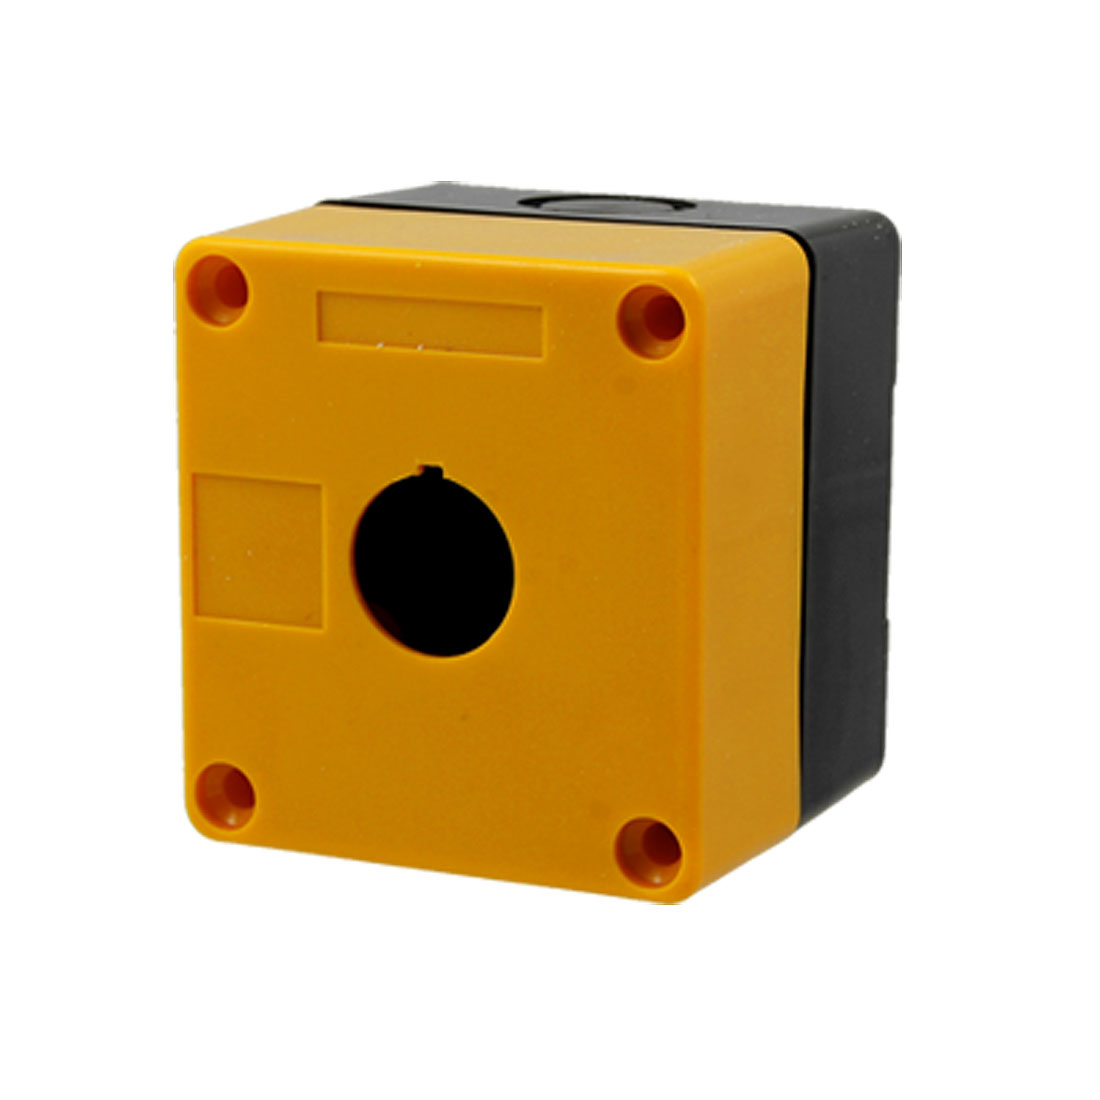 Plastic Yellow Black 1 Push Button Control Station Switch Box